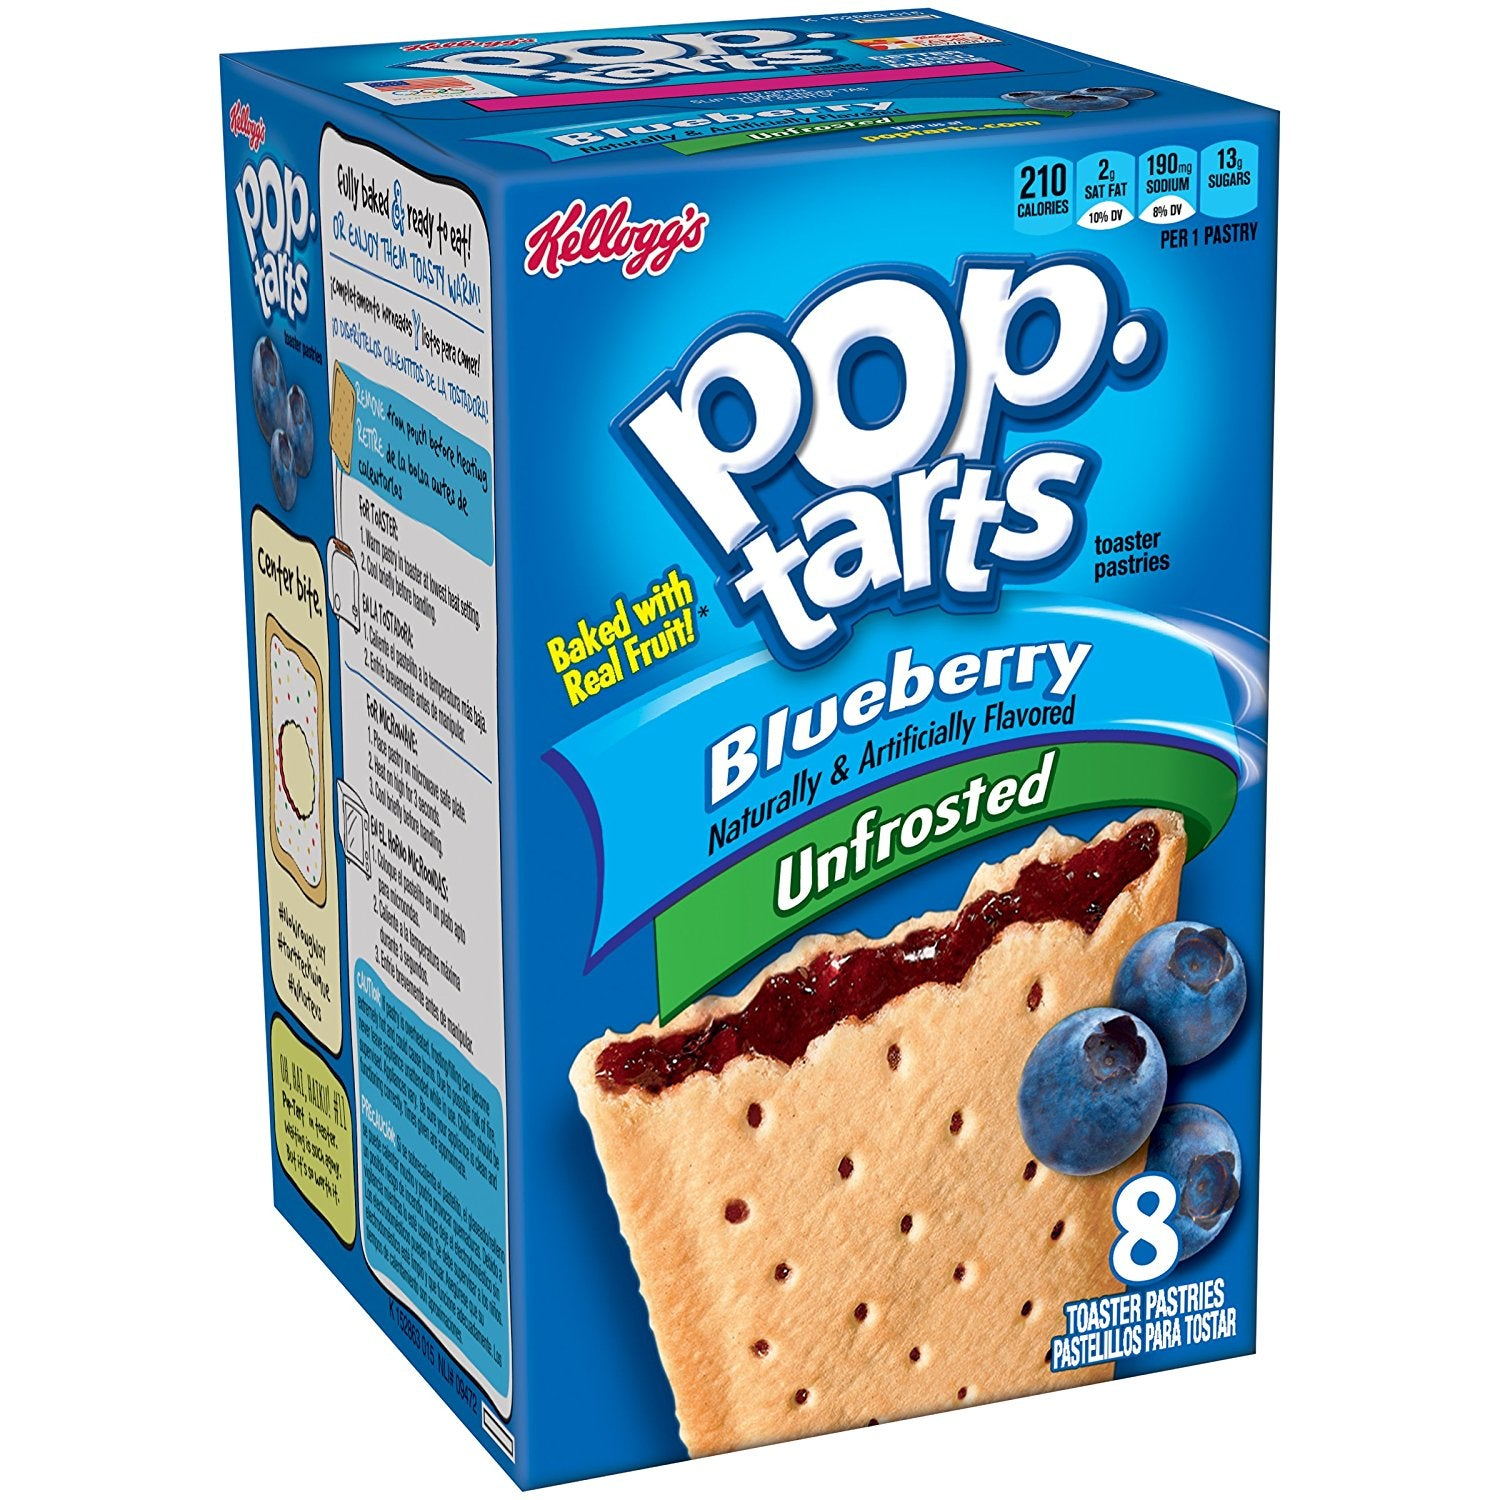 Kellogg's Pop Tarts Unfrosted Blueberry (8 pack) - A Taste of the States